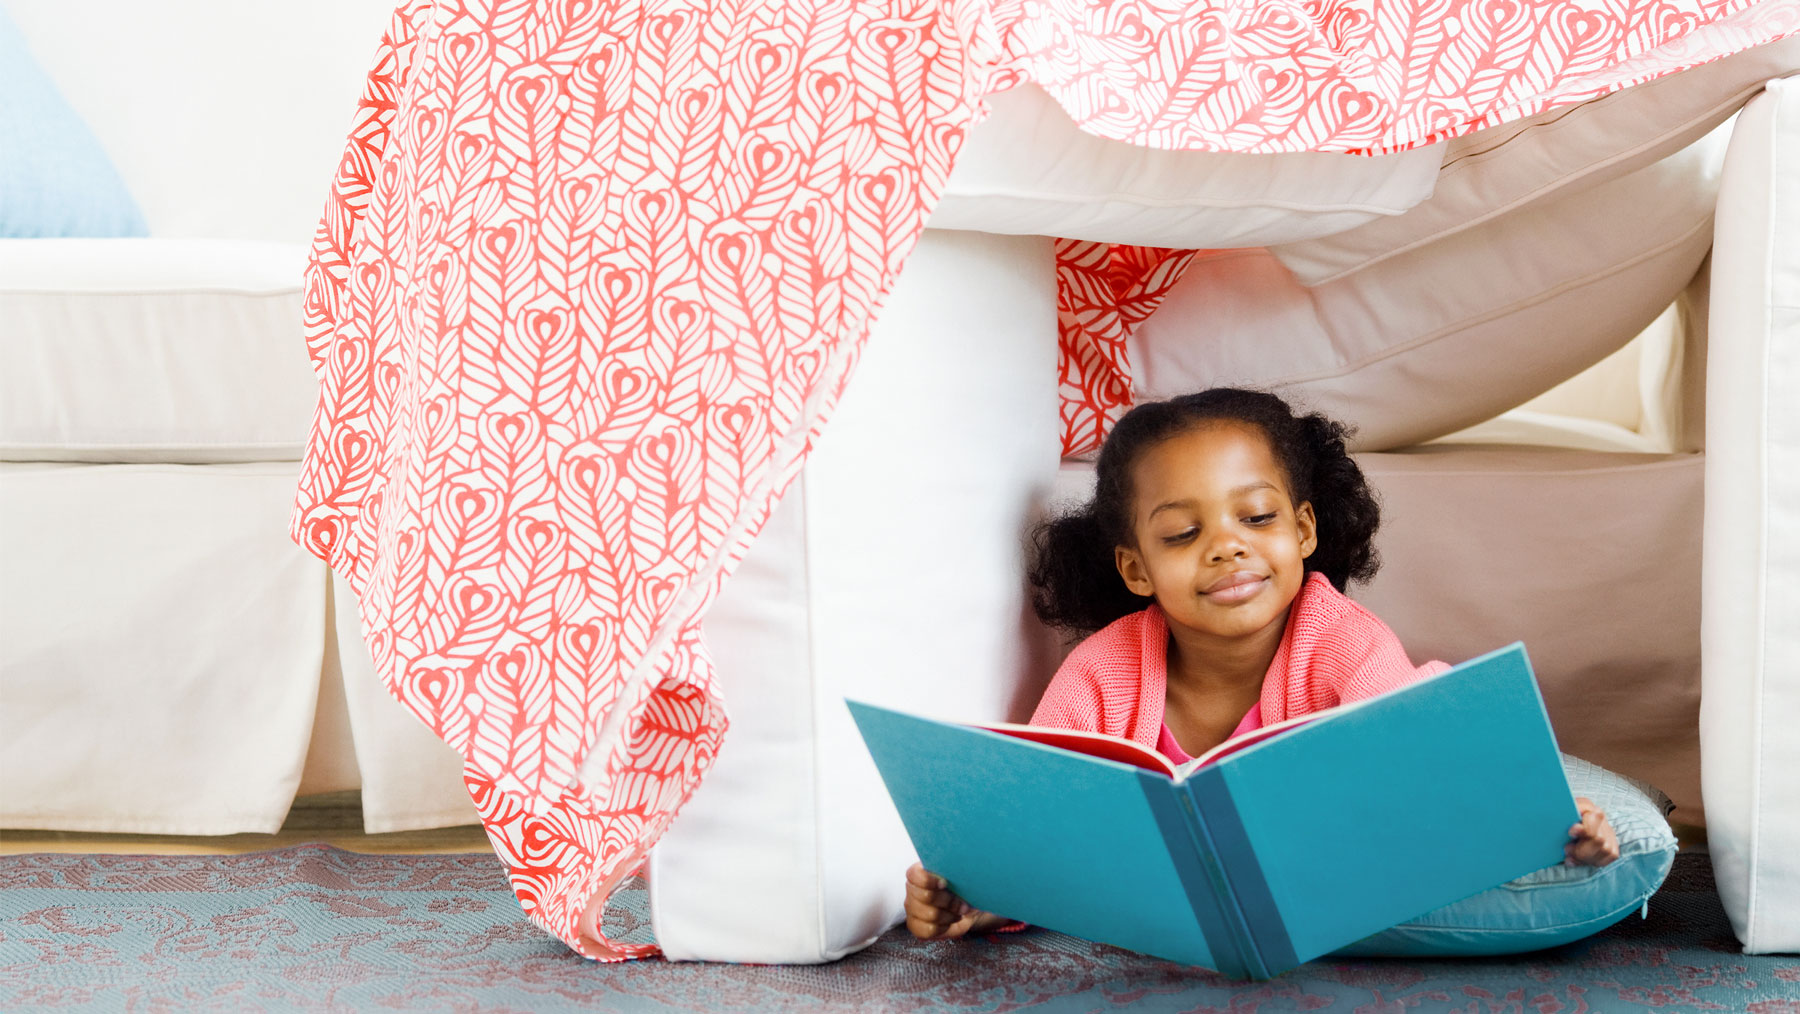 How to make a blanket fort - girl reading in blanket fort